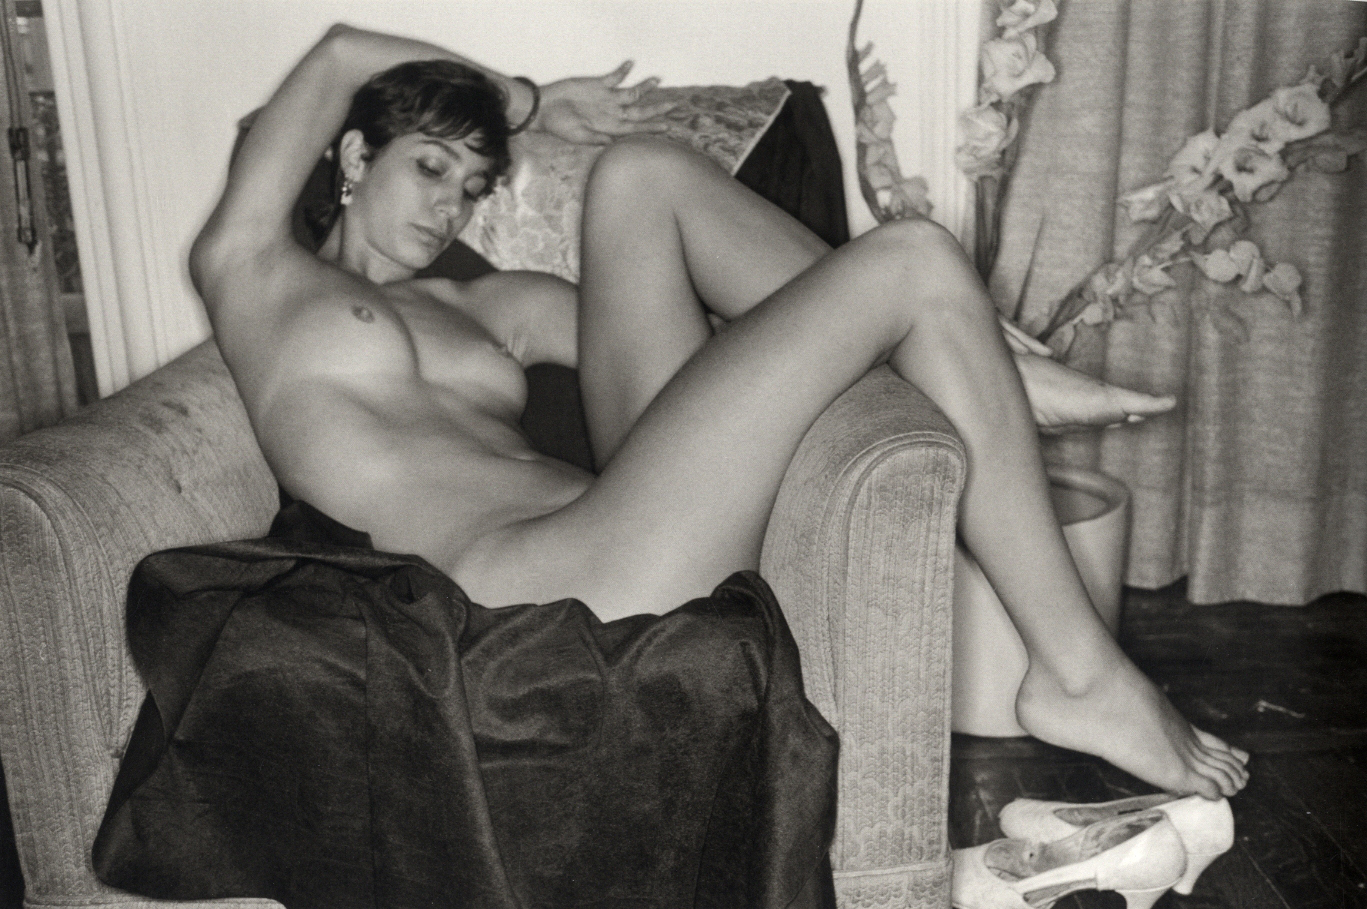 Lee Friedlander: The Nudes: A Second Look [SIGNED]